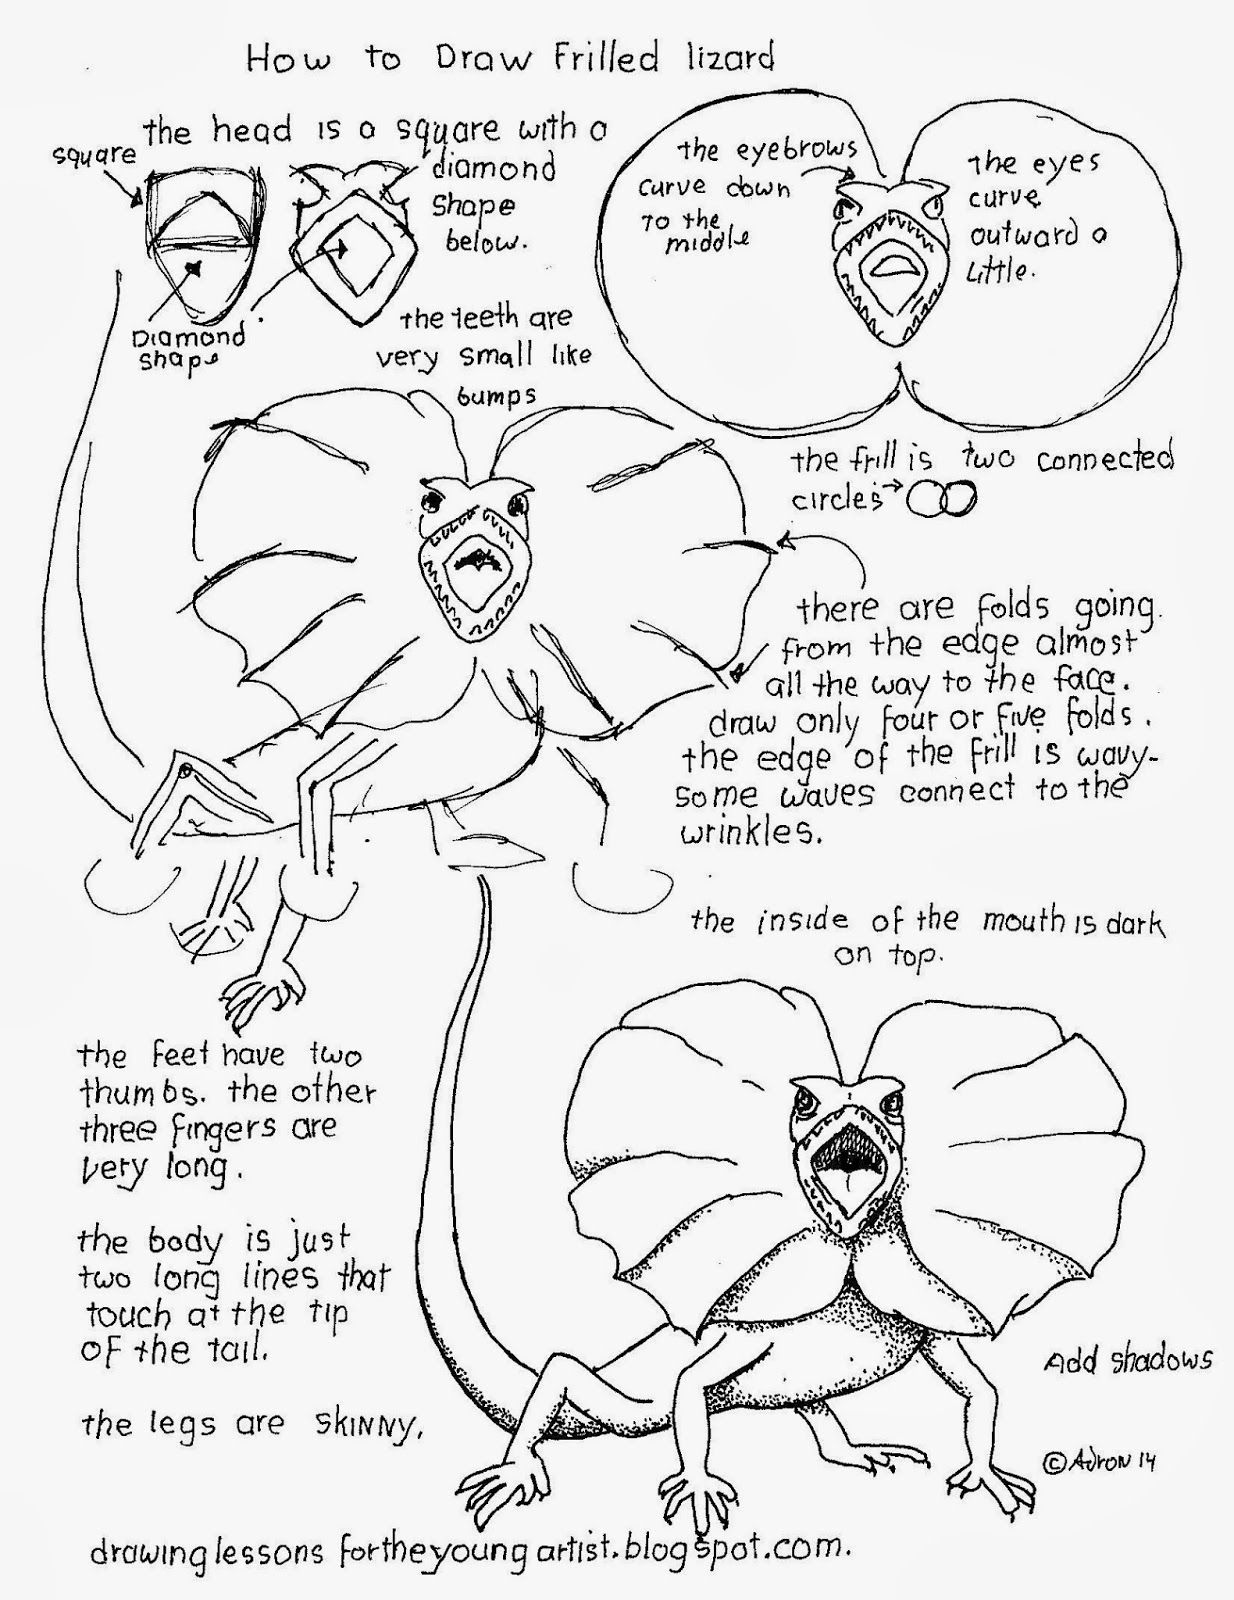 Free How To Draw An Australian Frilled Lizard Worksheet